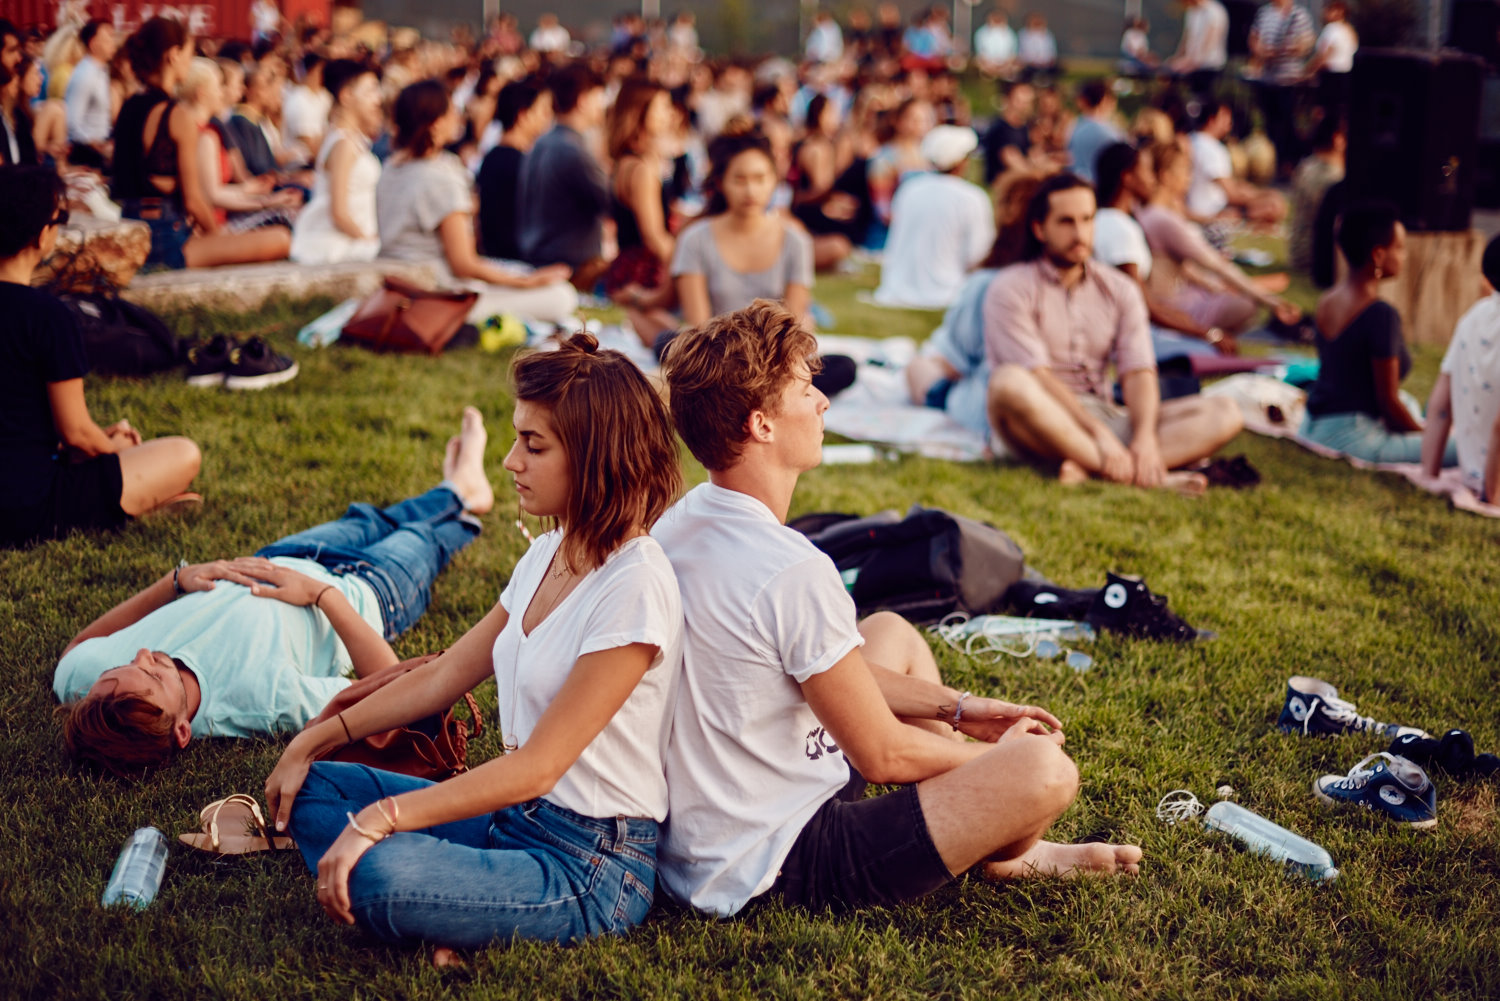 The Big Quiet: Mass Meditation in NYC